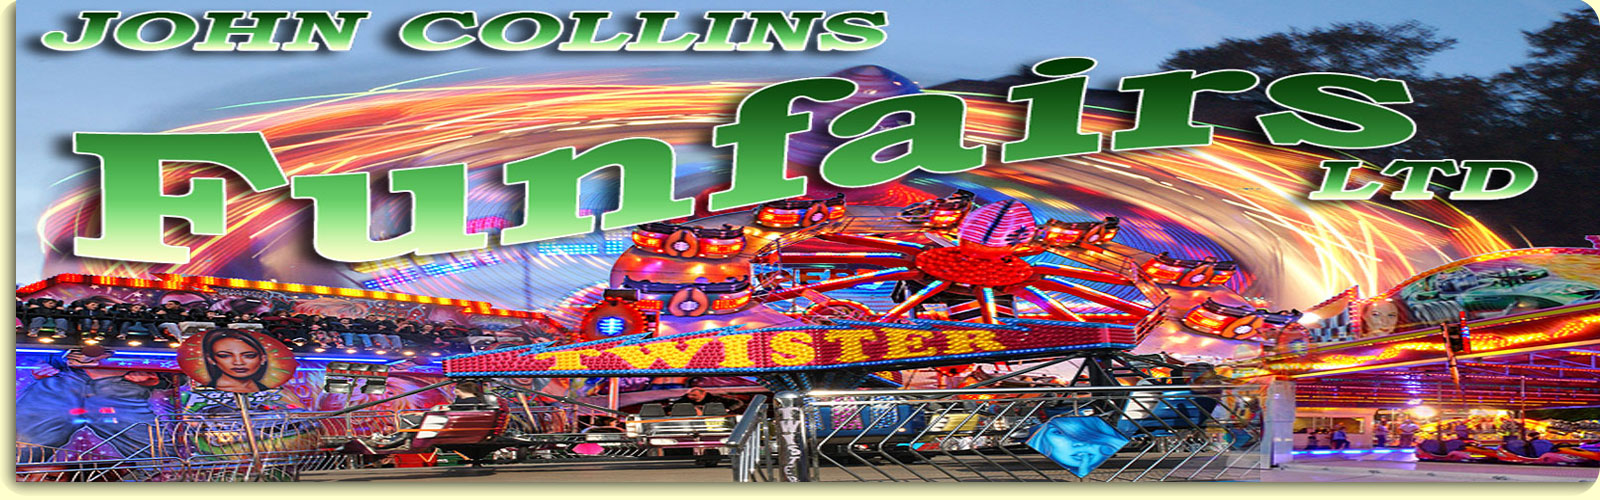 John Collins Funfairs ltd, funfair hire specialist, header image